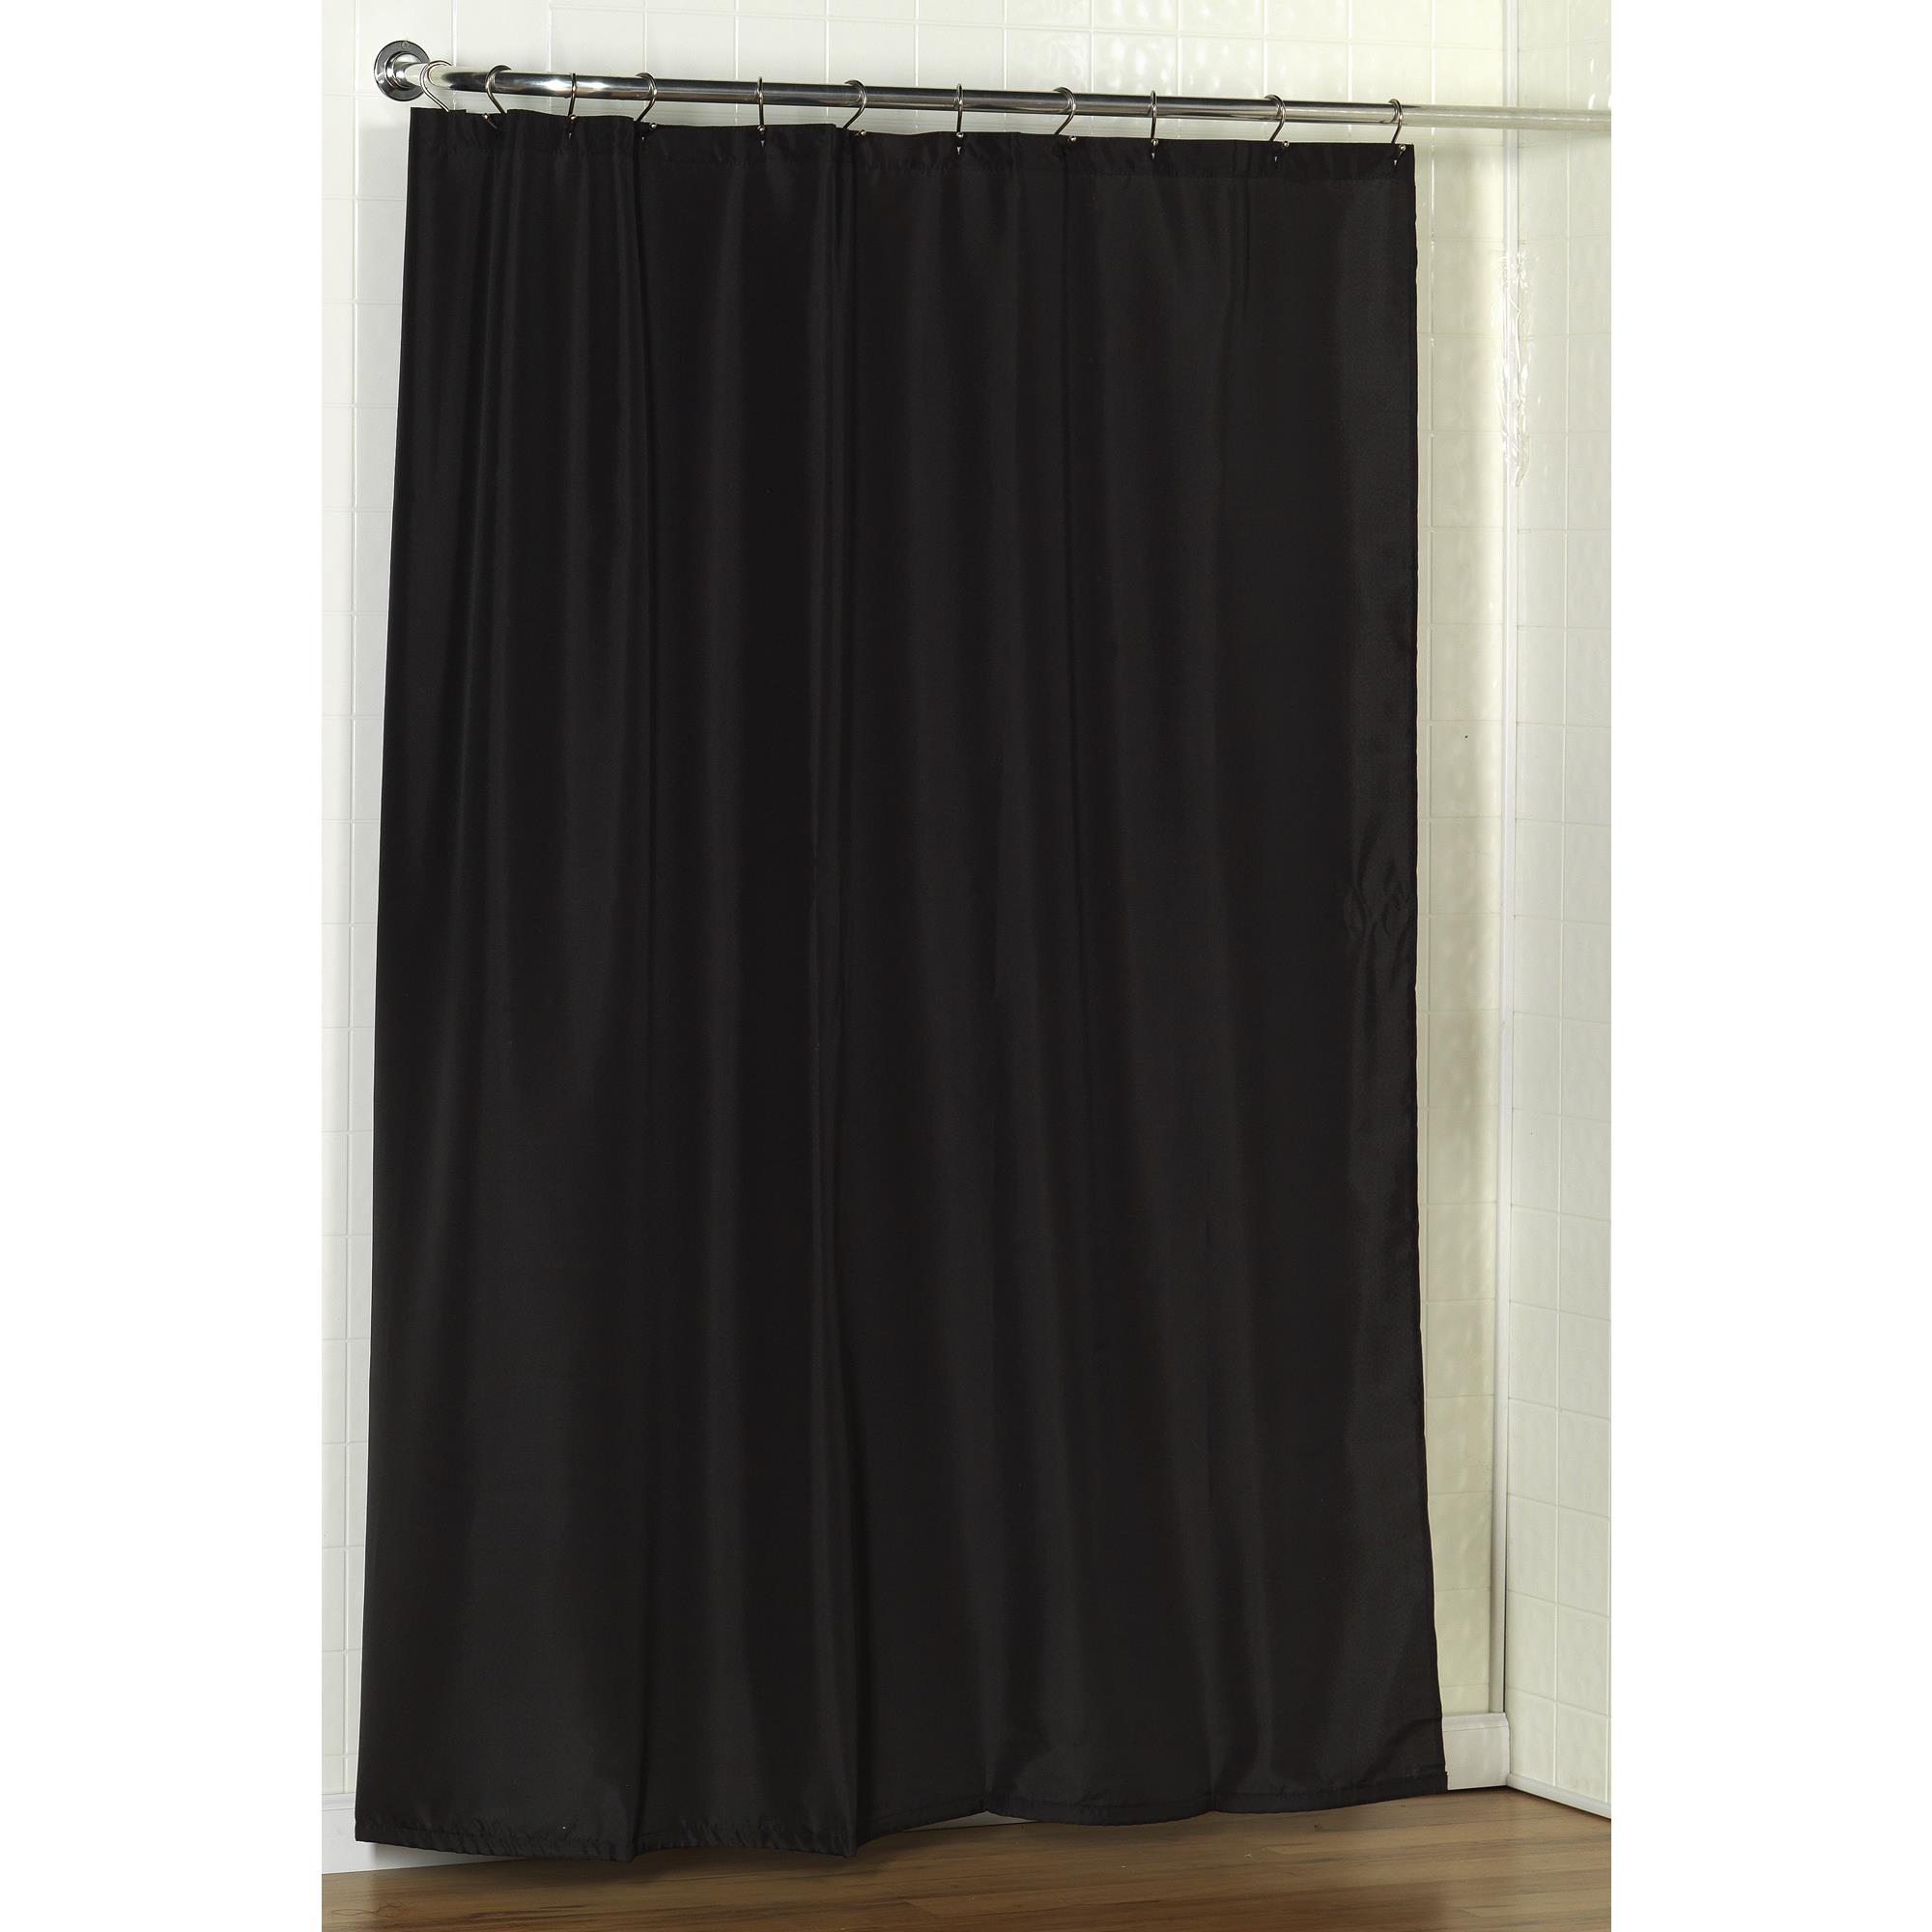 Details About Carnation Home Standard Sized Polyester Fabric Shower Curtain Liner In Black